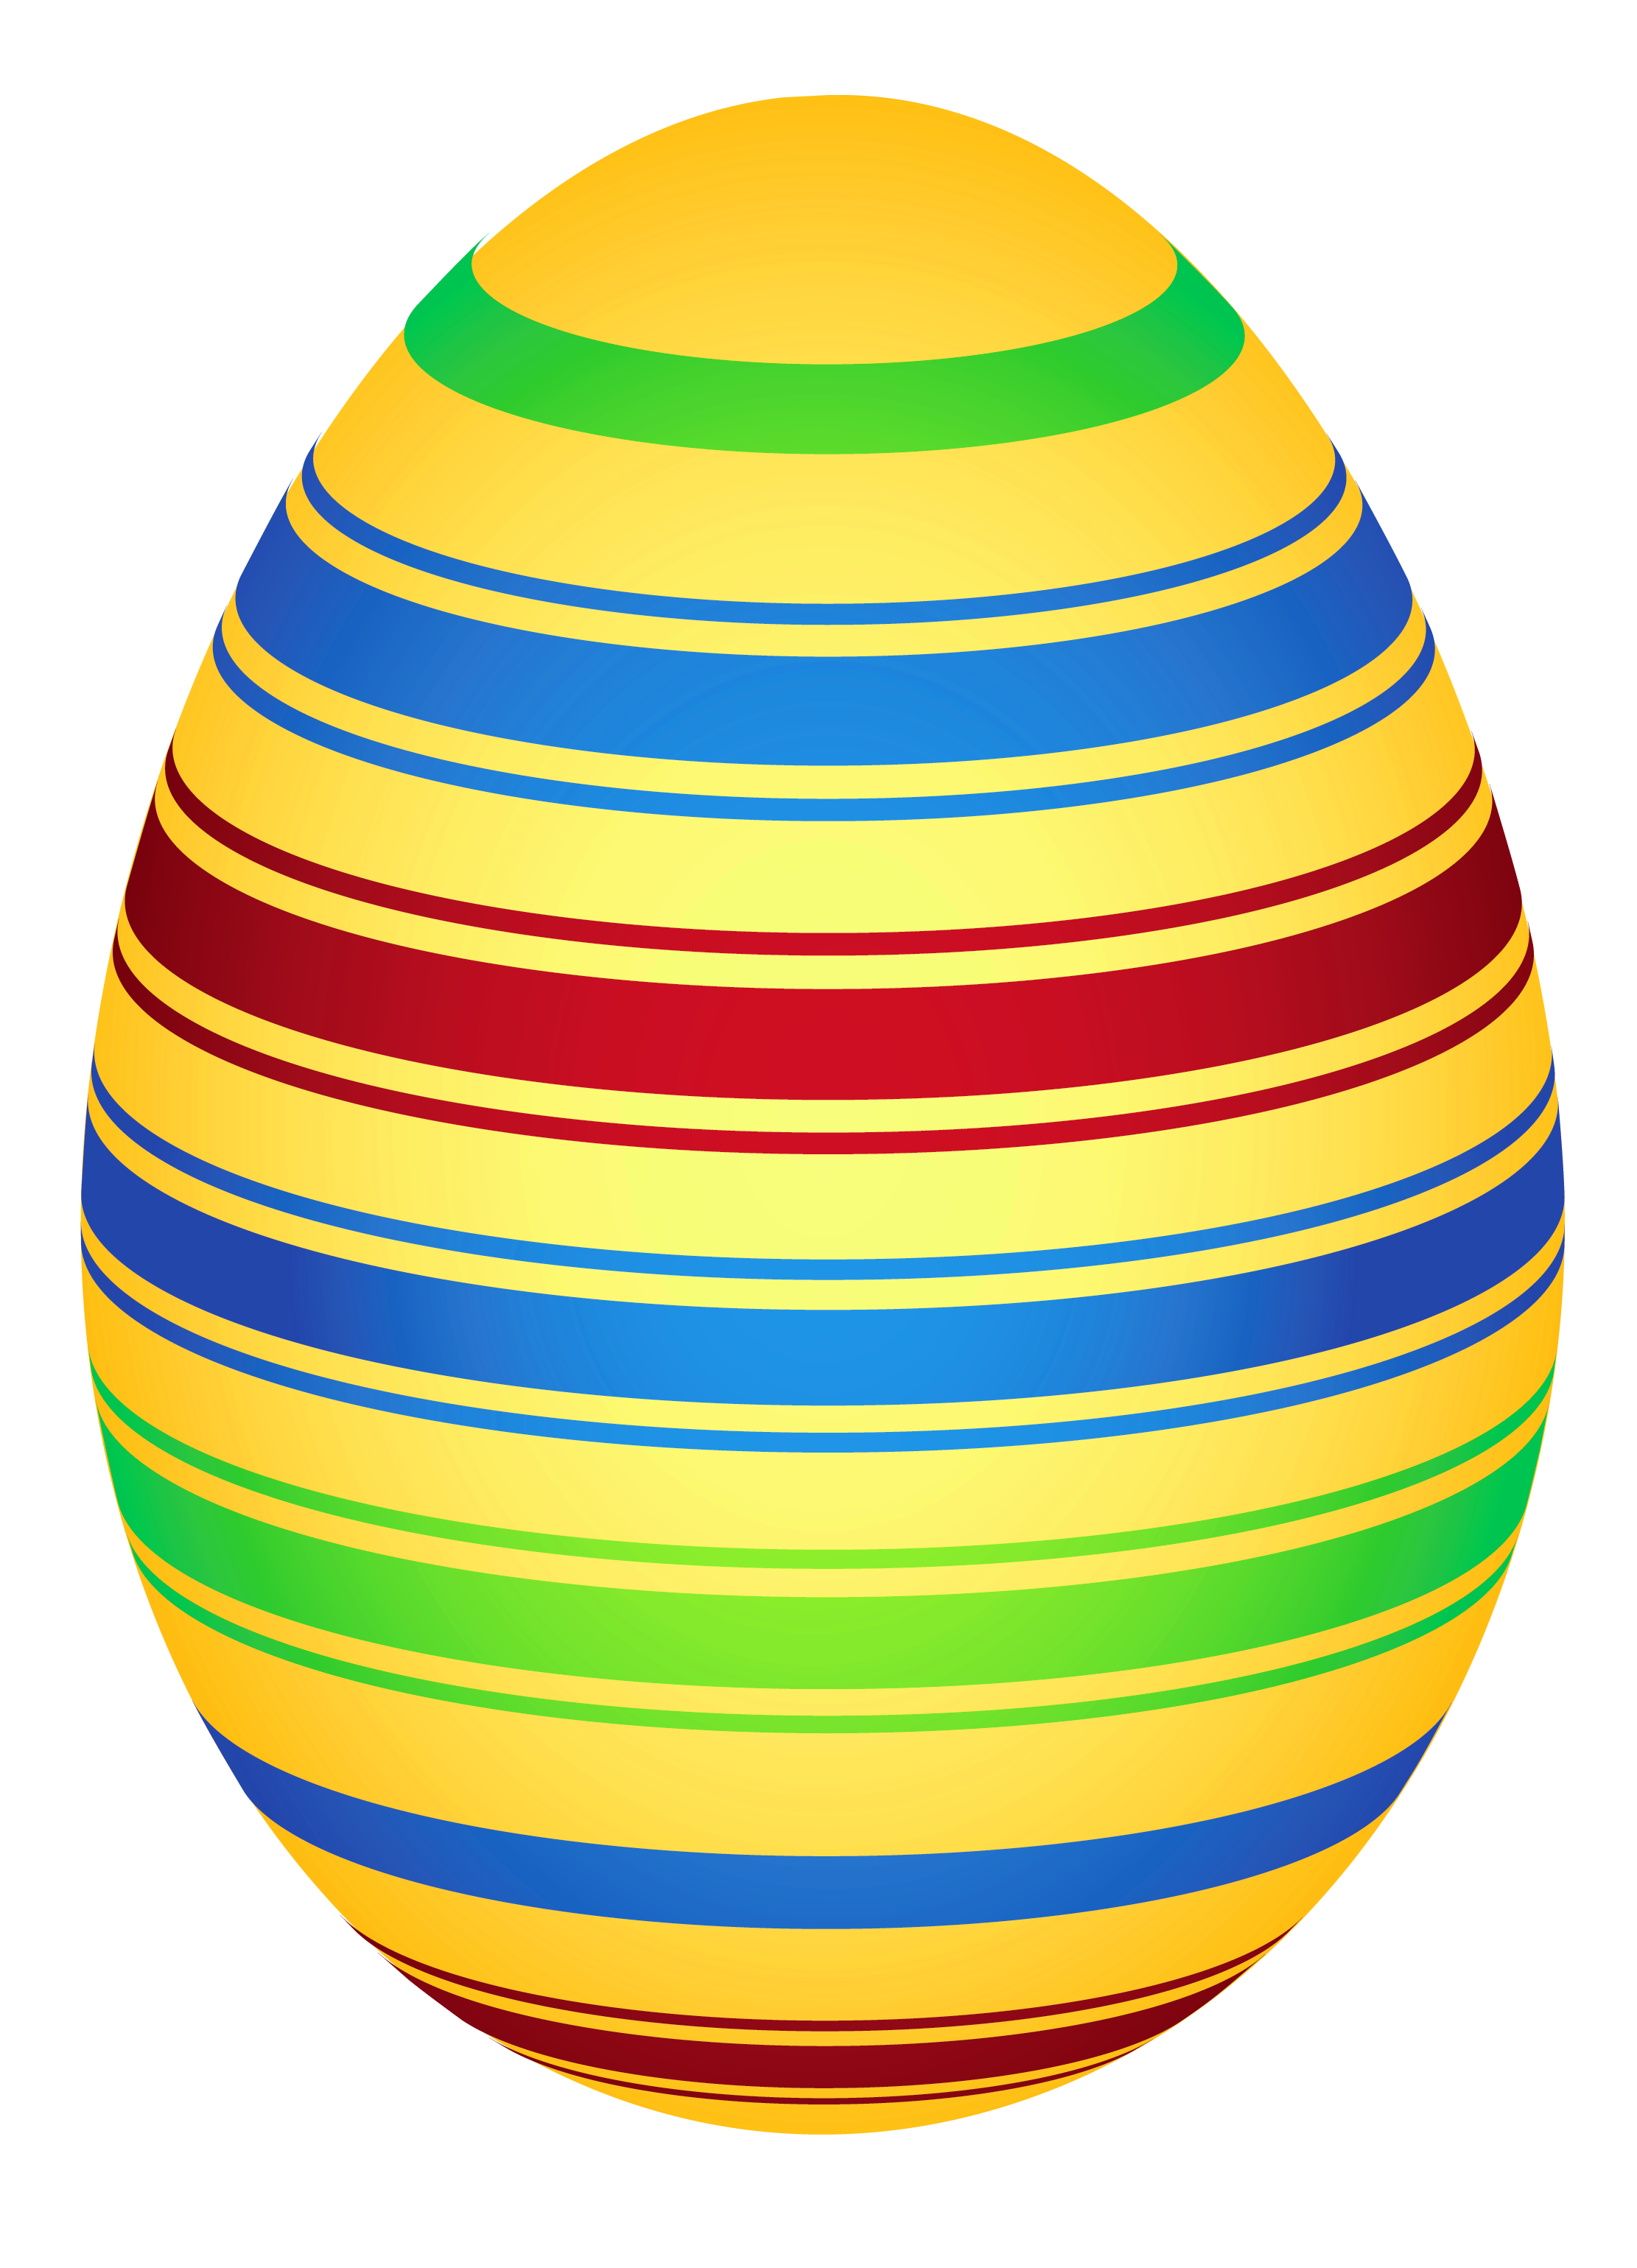 Yellow Colorful Easter Egg Png Clipairt Picture Easter Prints Coloring Easter Eggs Easter Colors